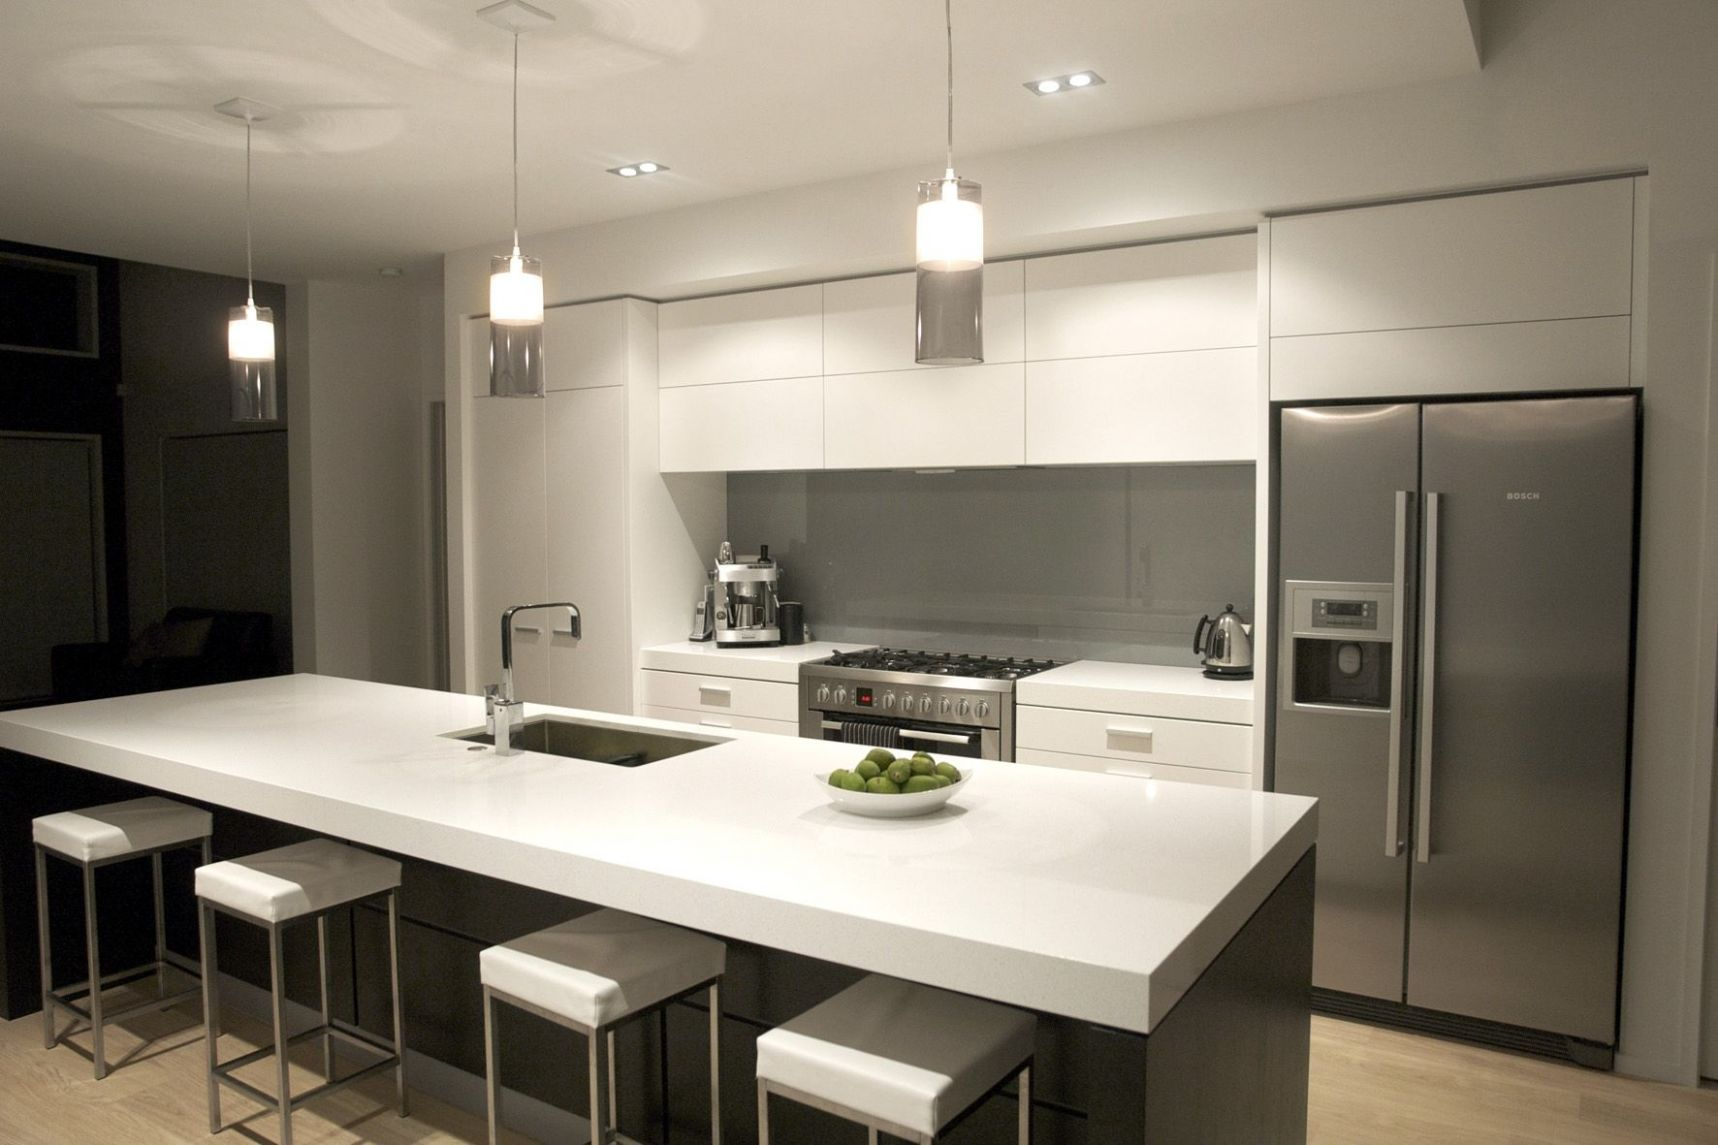 modern kitchen designs nz - Google Search | Moderne küchenideen ..